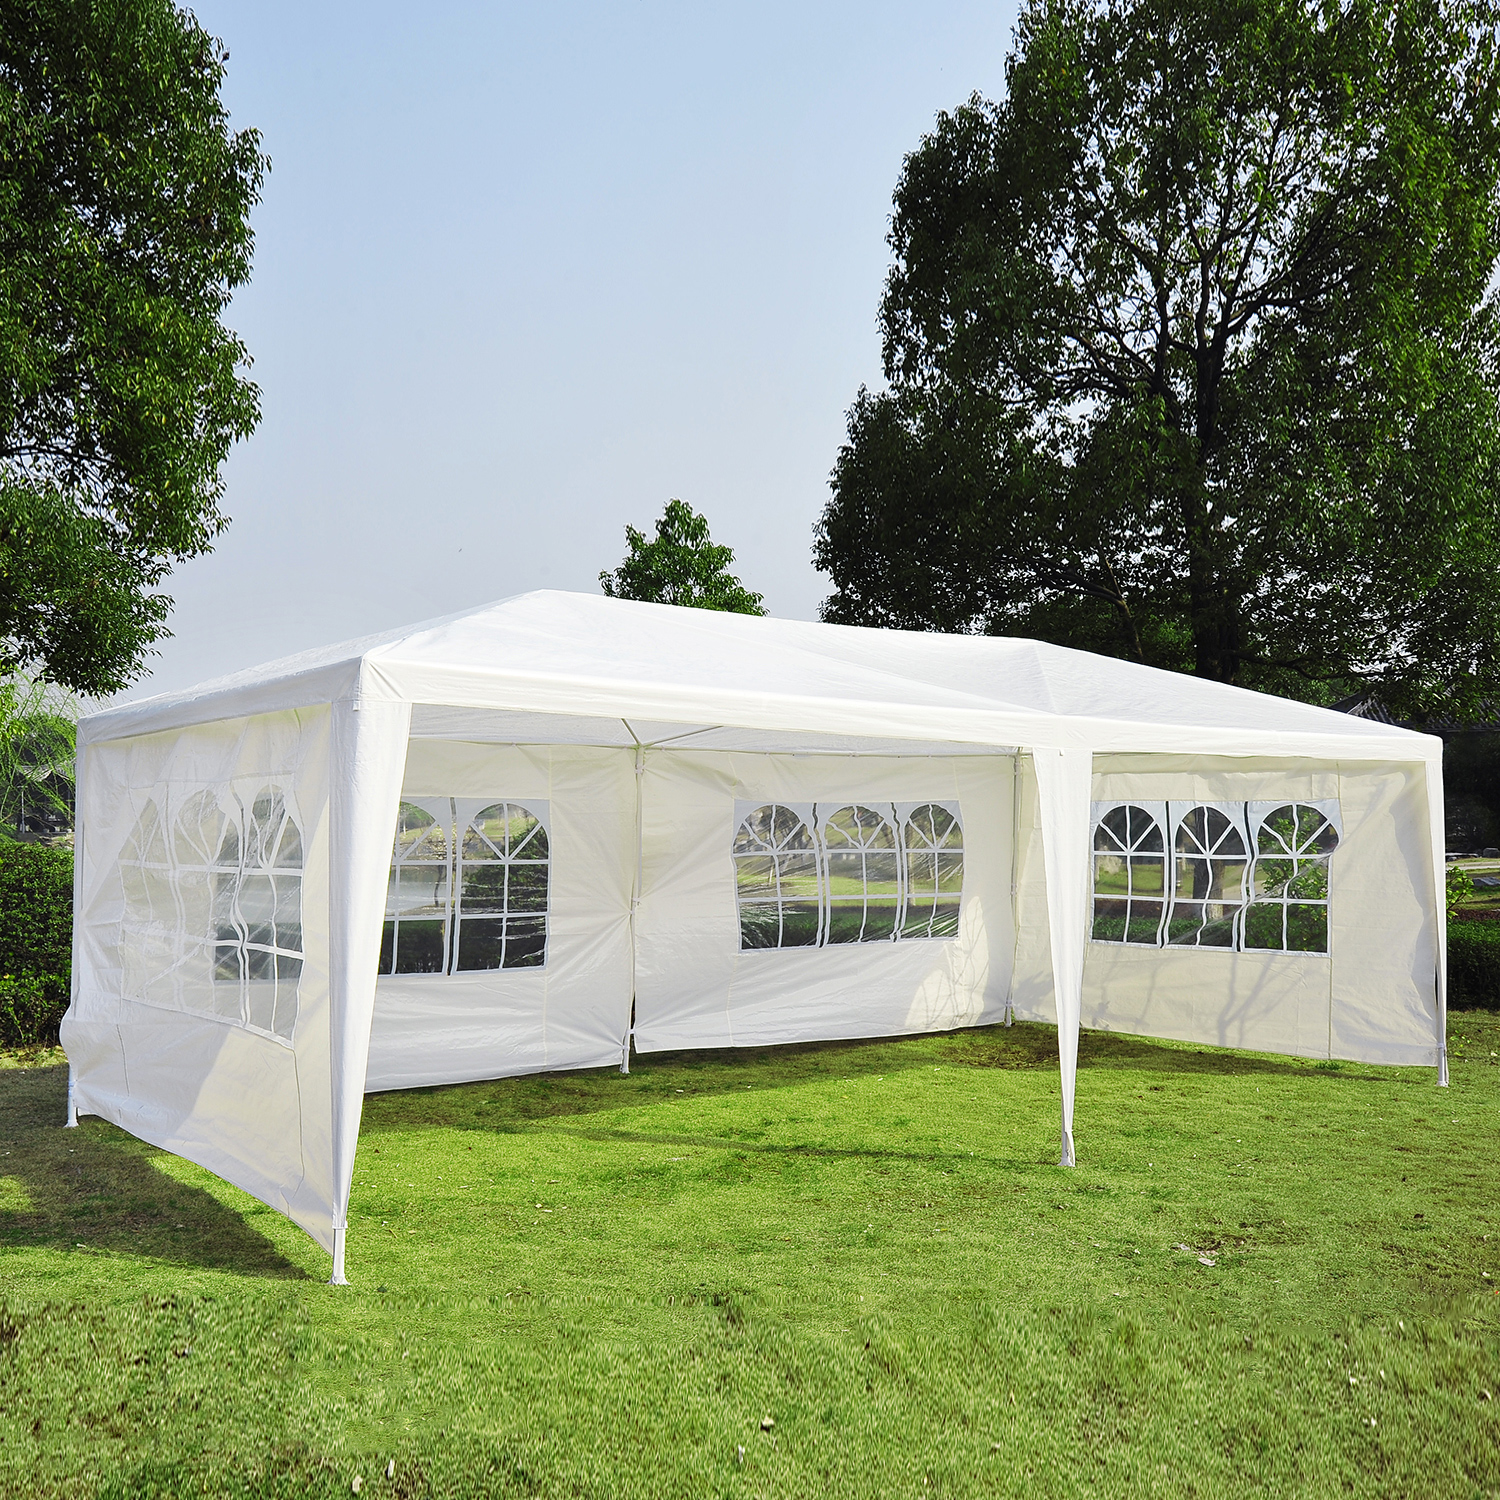 Outsunny 10 X 20 Gazebo Canopy Party Tent W 4 Removable Window Side Walls White Walmart Com